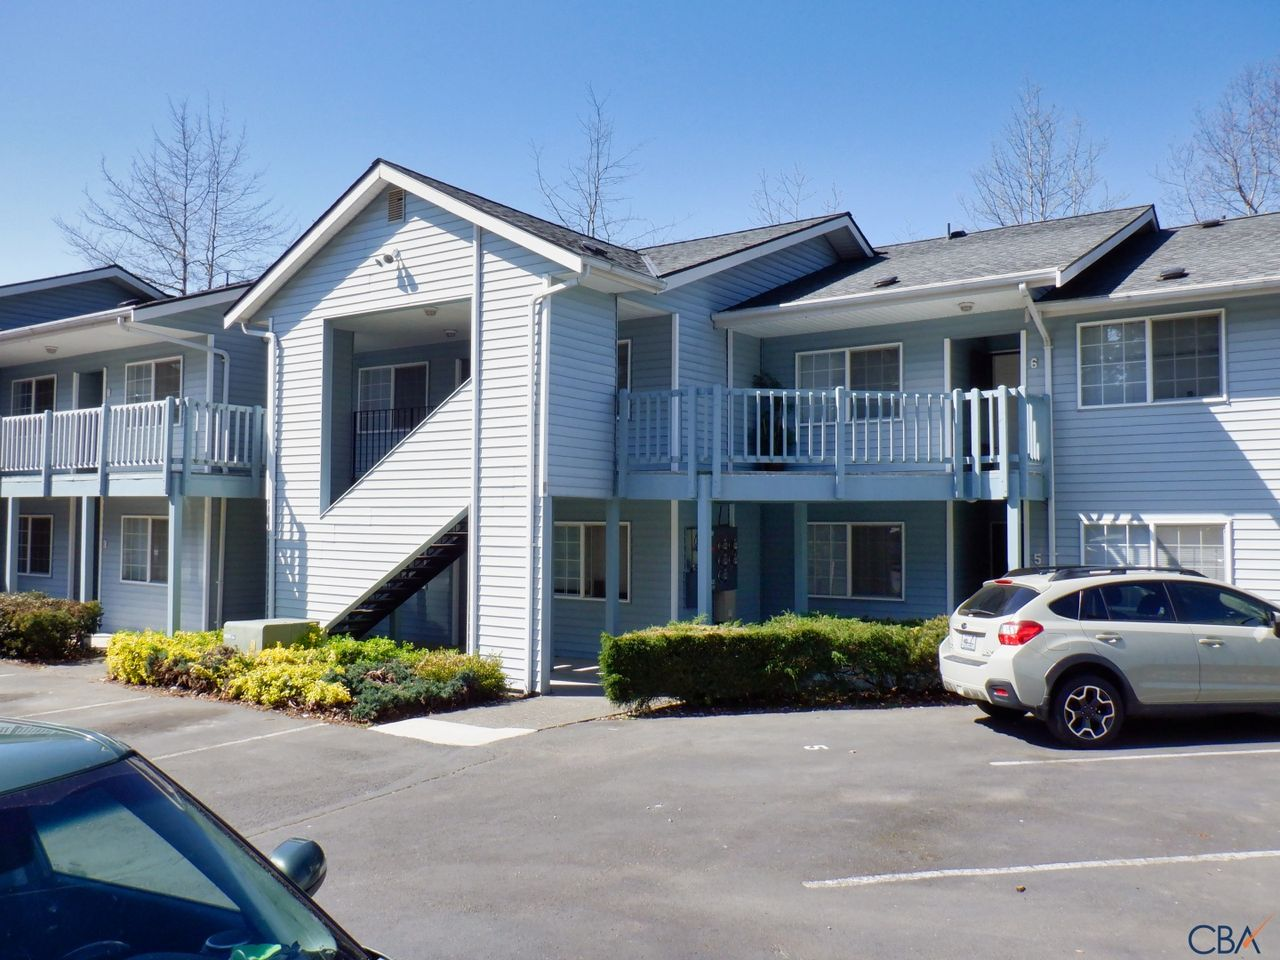 Primary Listing Image for MLS#: 638637